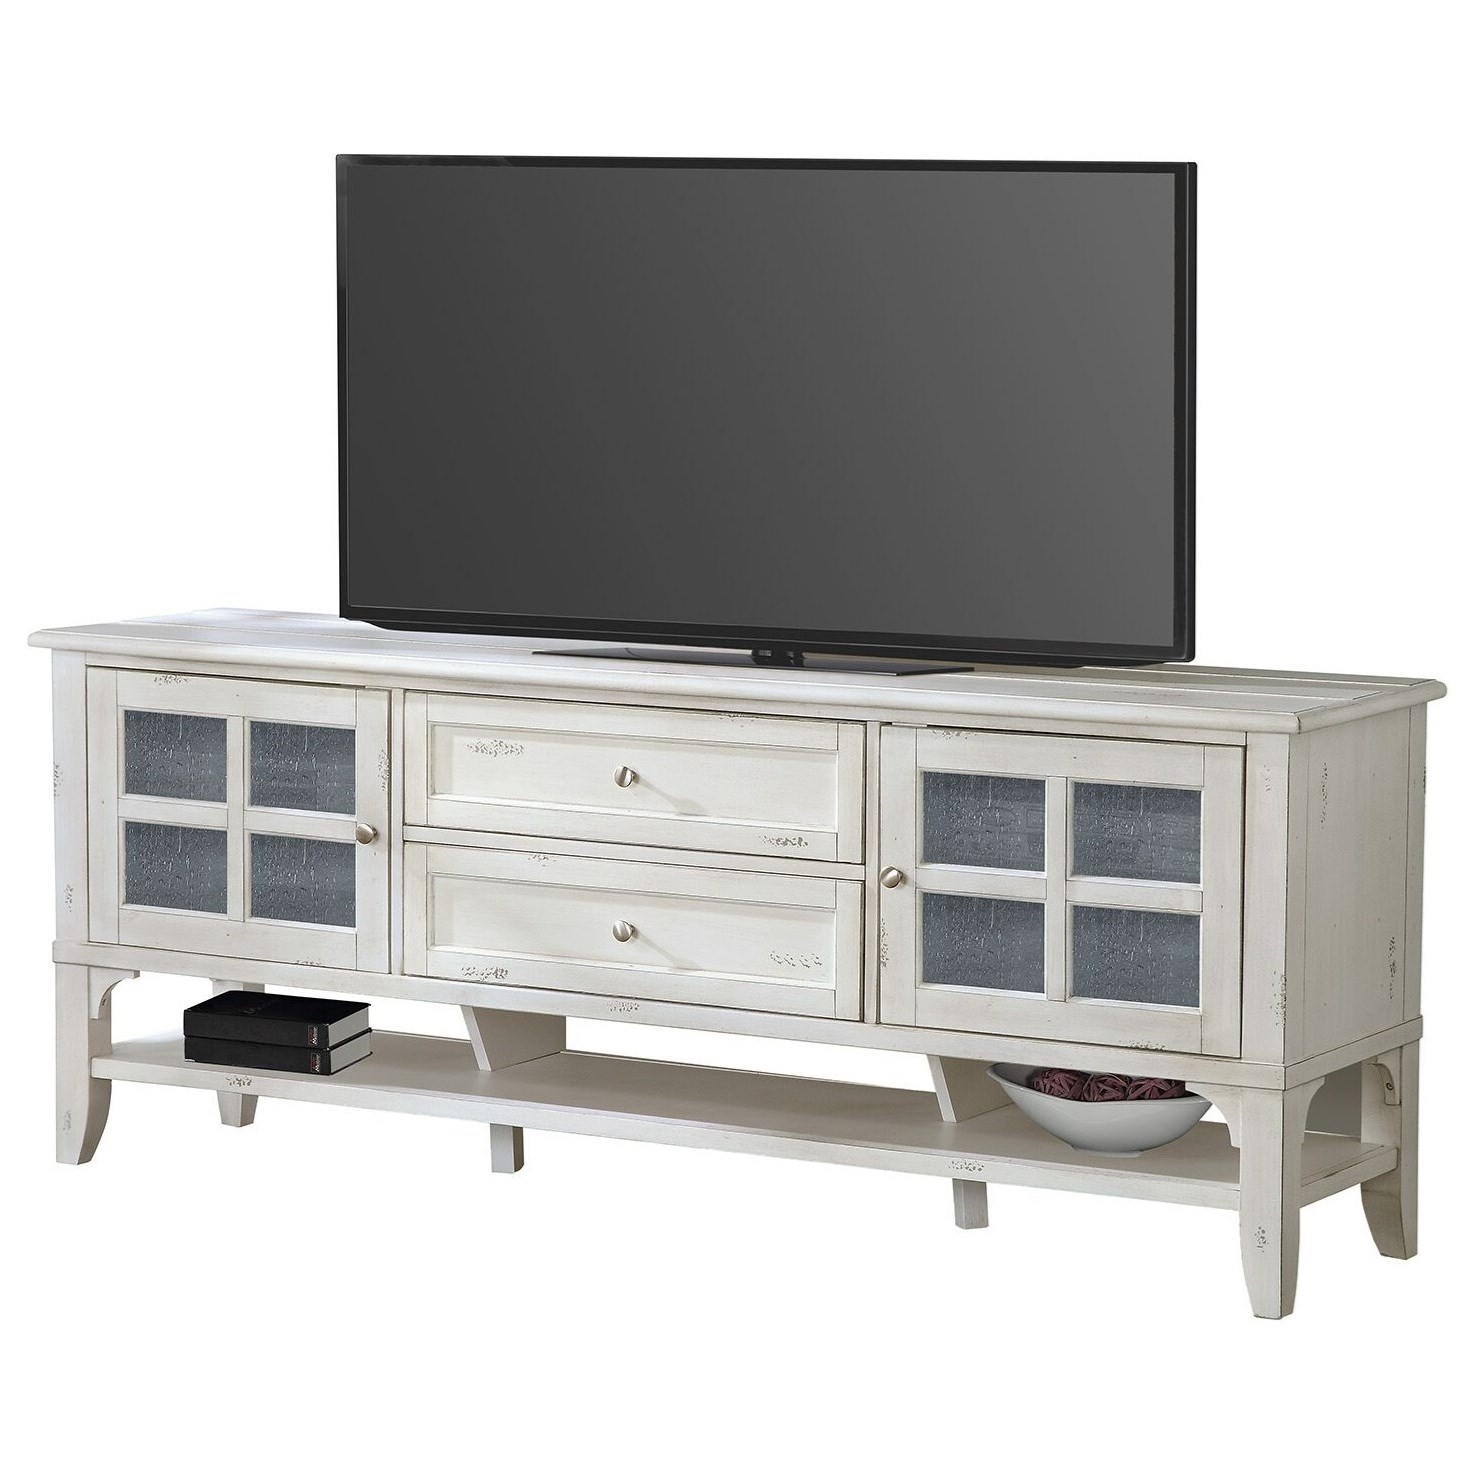 "Lenox Lenox 76"" TV Console by Parker House at Morris Home"